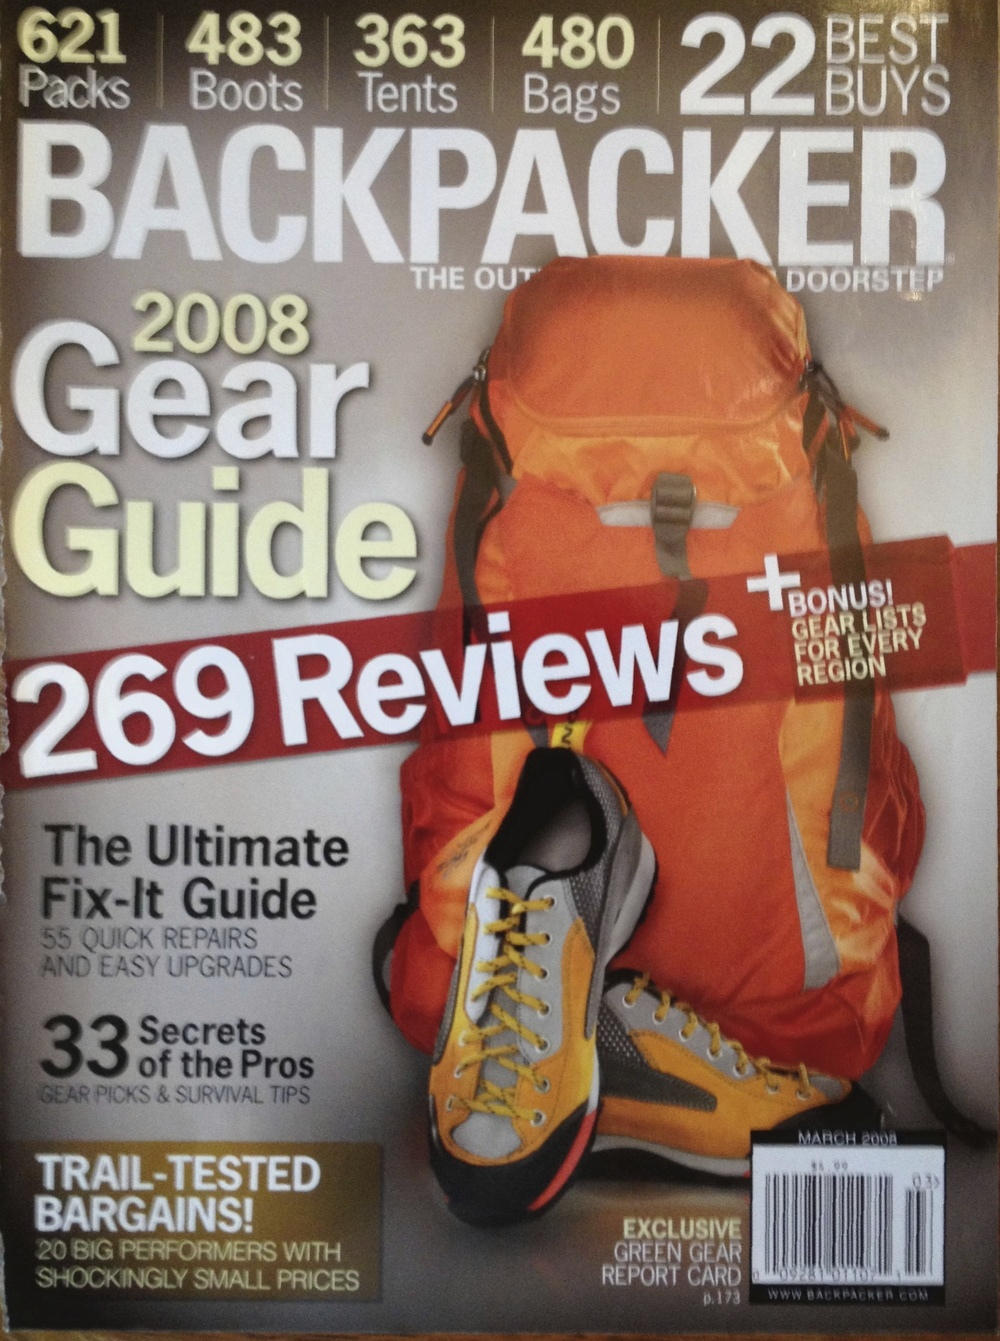 Backpacker Ad.jpg